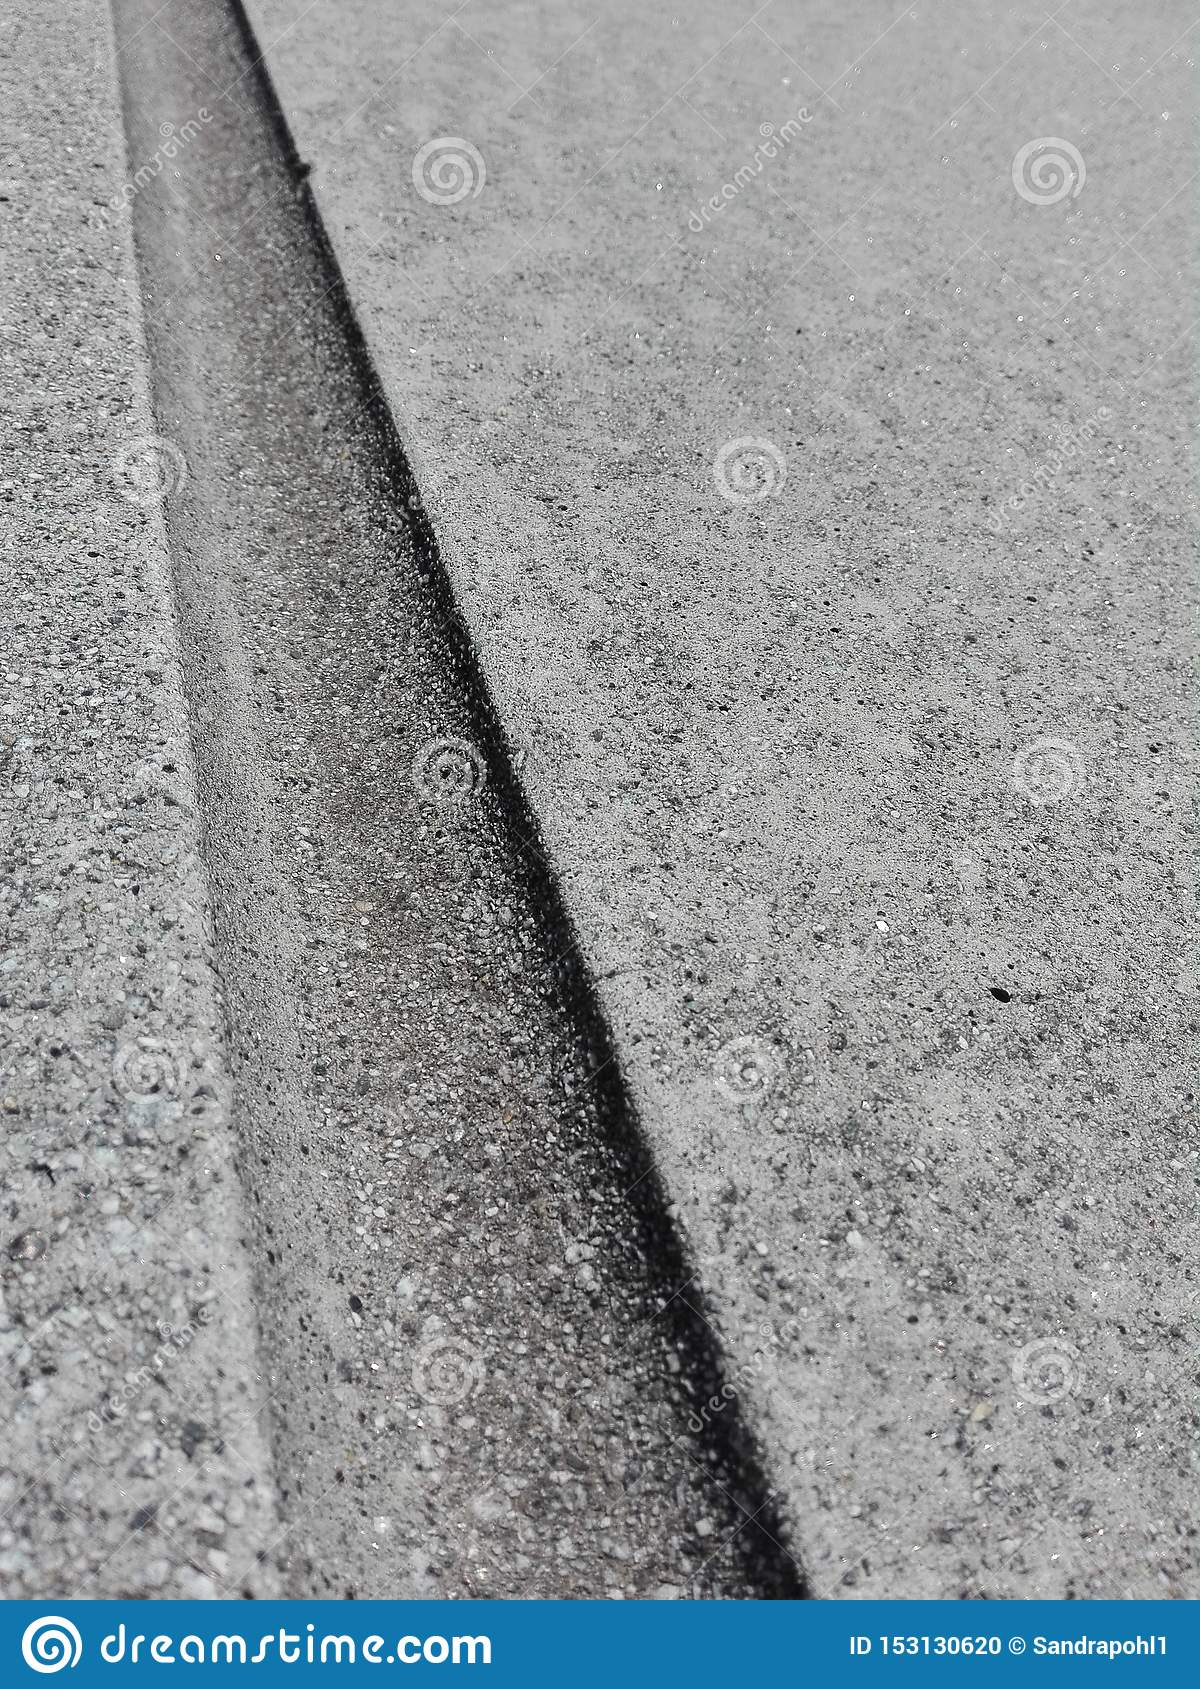 Groove in the concrete background